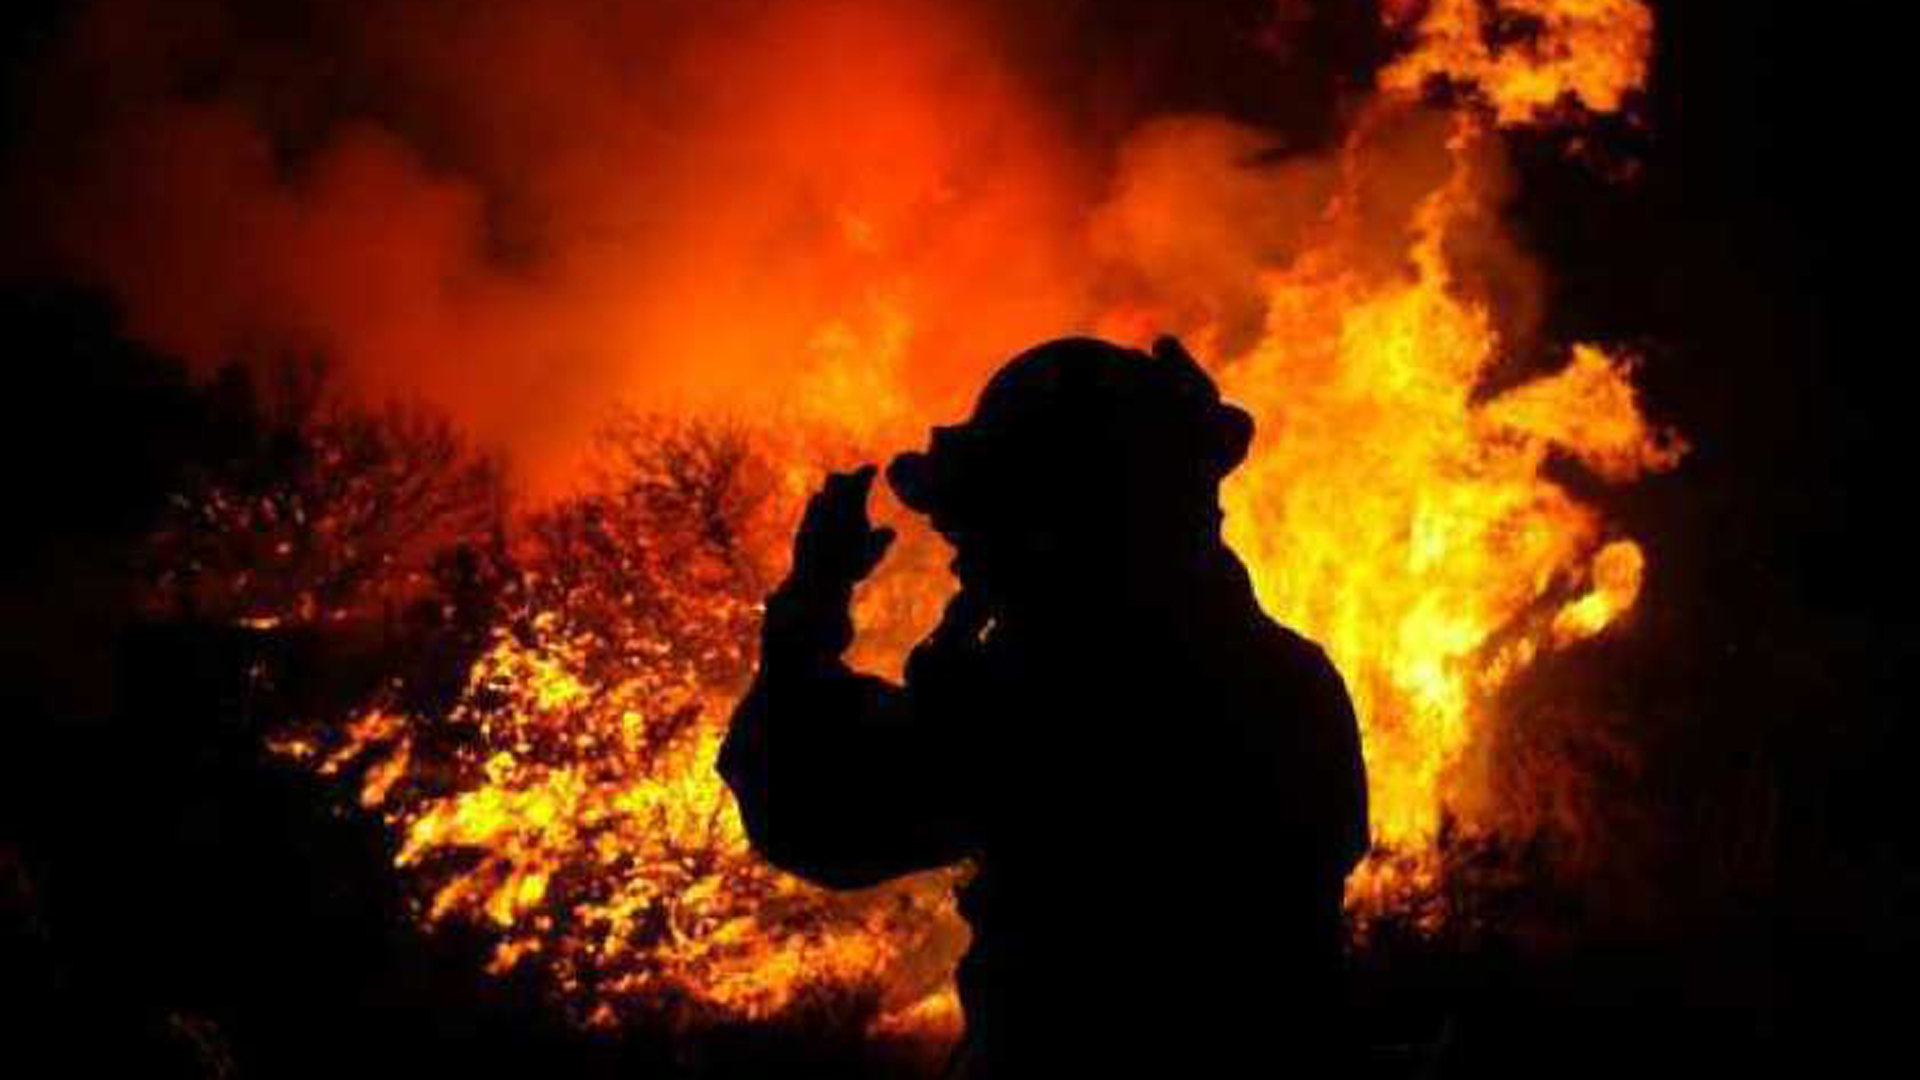 """A firefighter surveys a scene at the 2003 Cedar fire in San Diego County, a blaze that was a """"game changer"""" for mutual-aid firefighting in California.(Credit: Allen J. Schaben / Los Angeles Times)"""